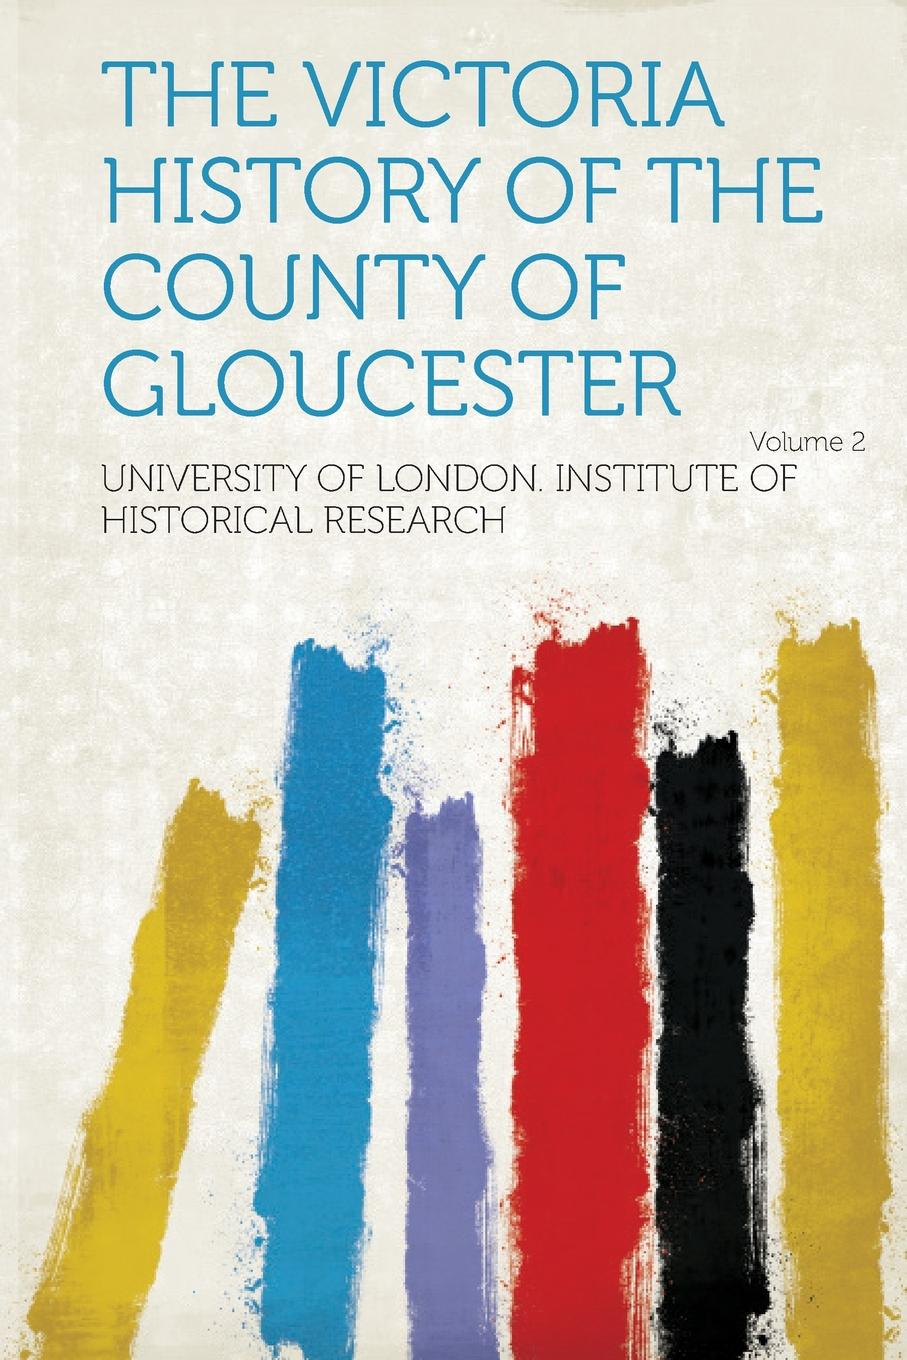 The Victoria History of the County of Gloucester Volume 2